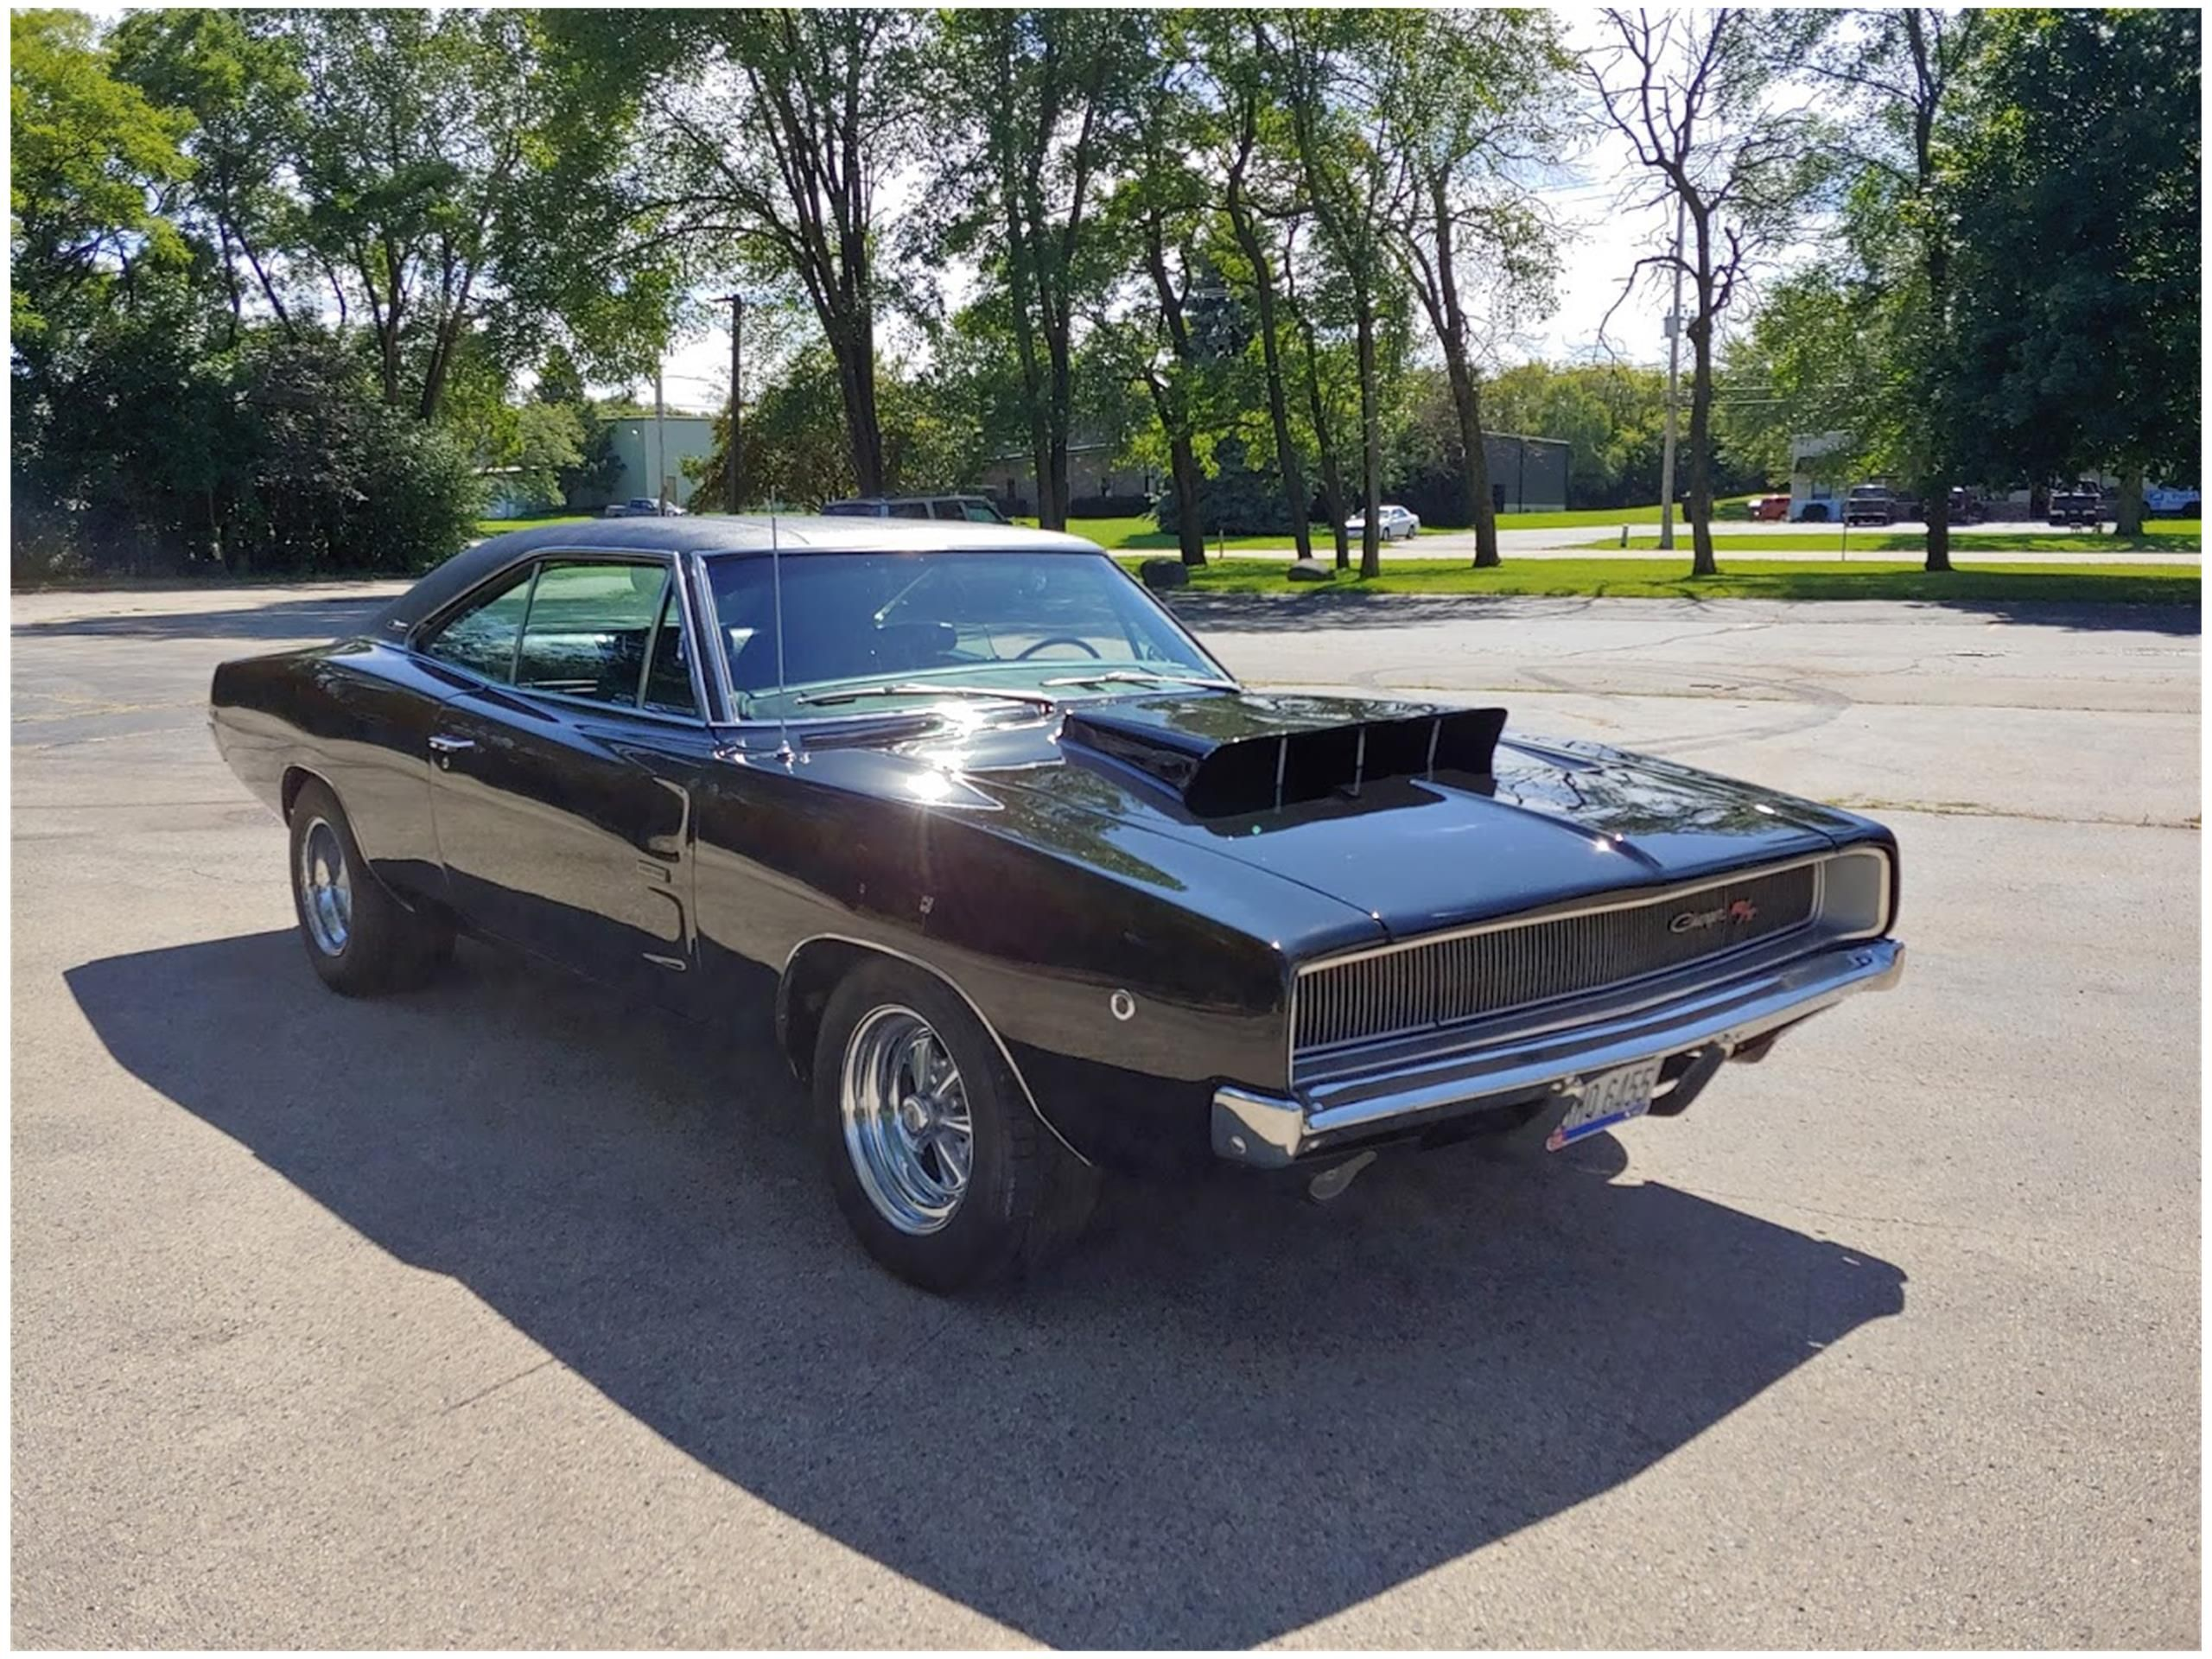 1968 Dodge Charger Cc 1259096 For Sale In Richmond Illinois Dodge Charger For Sale 1968 Dodge Charger 1969 Dodge Charger